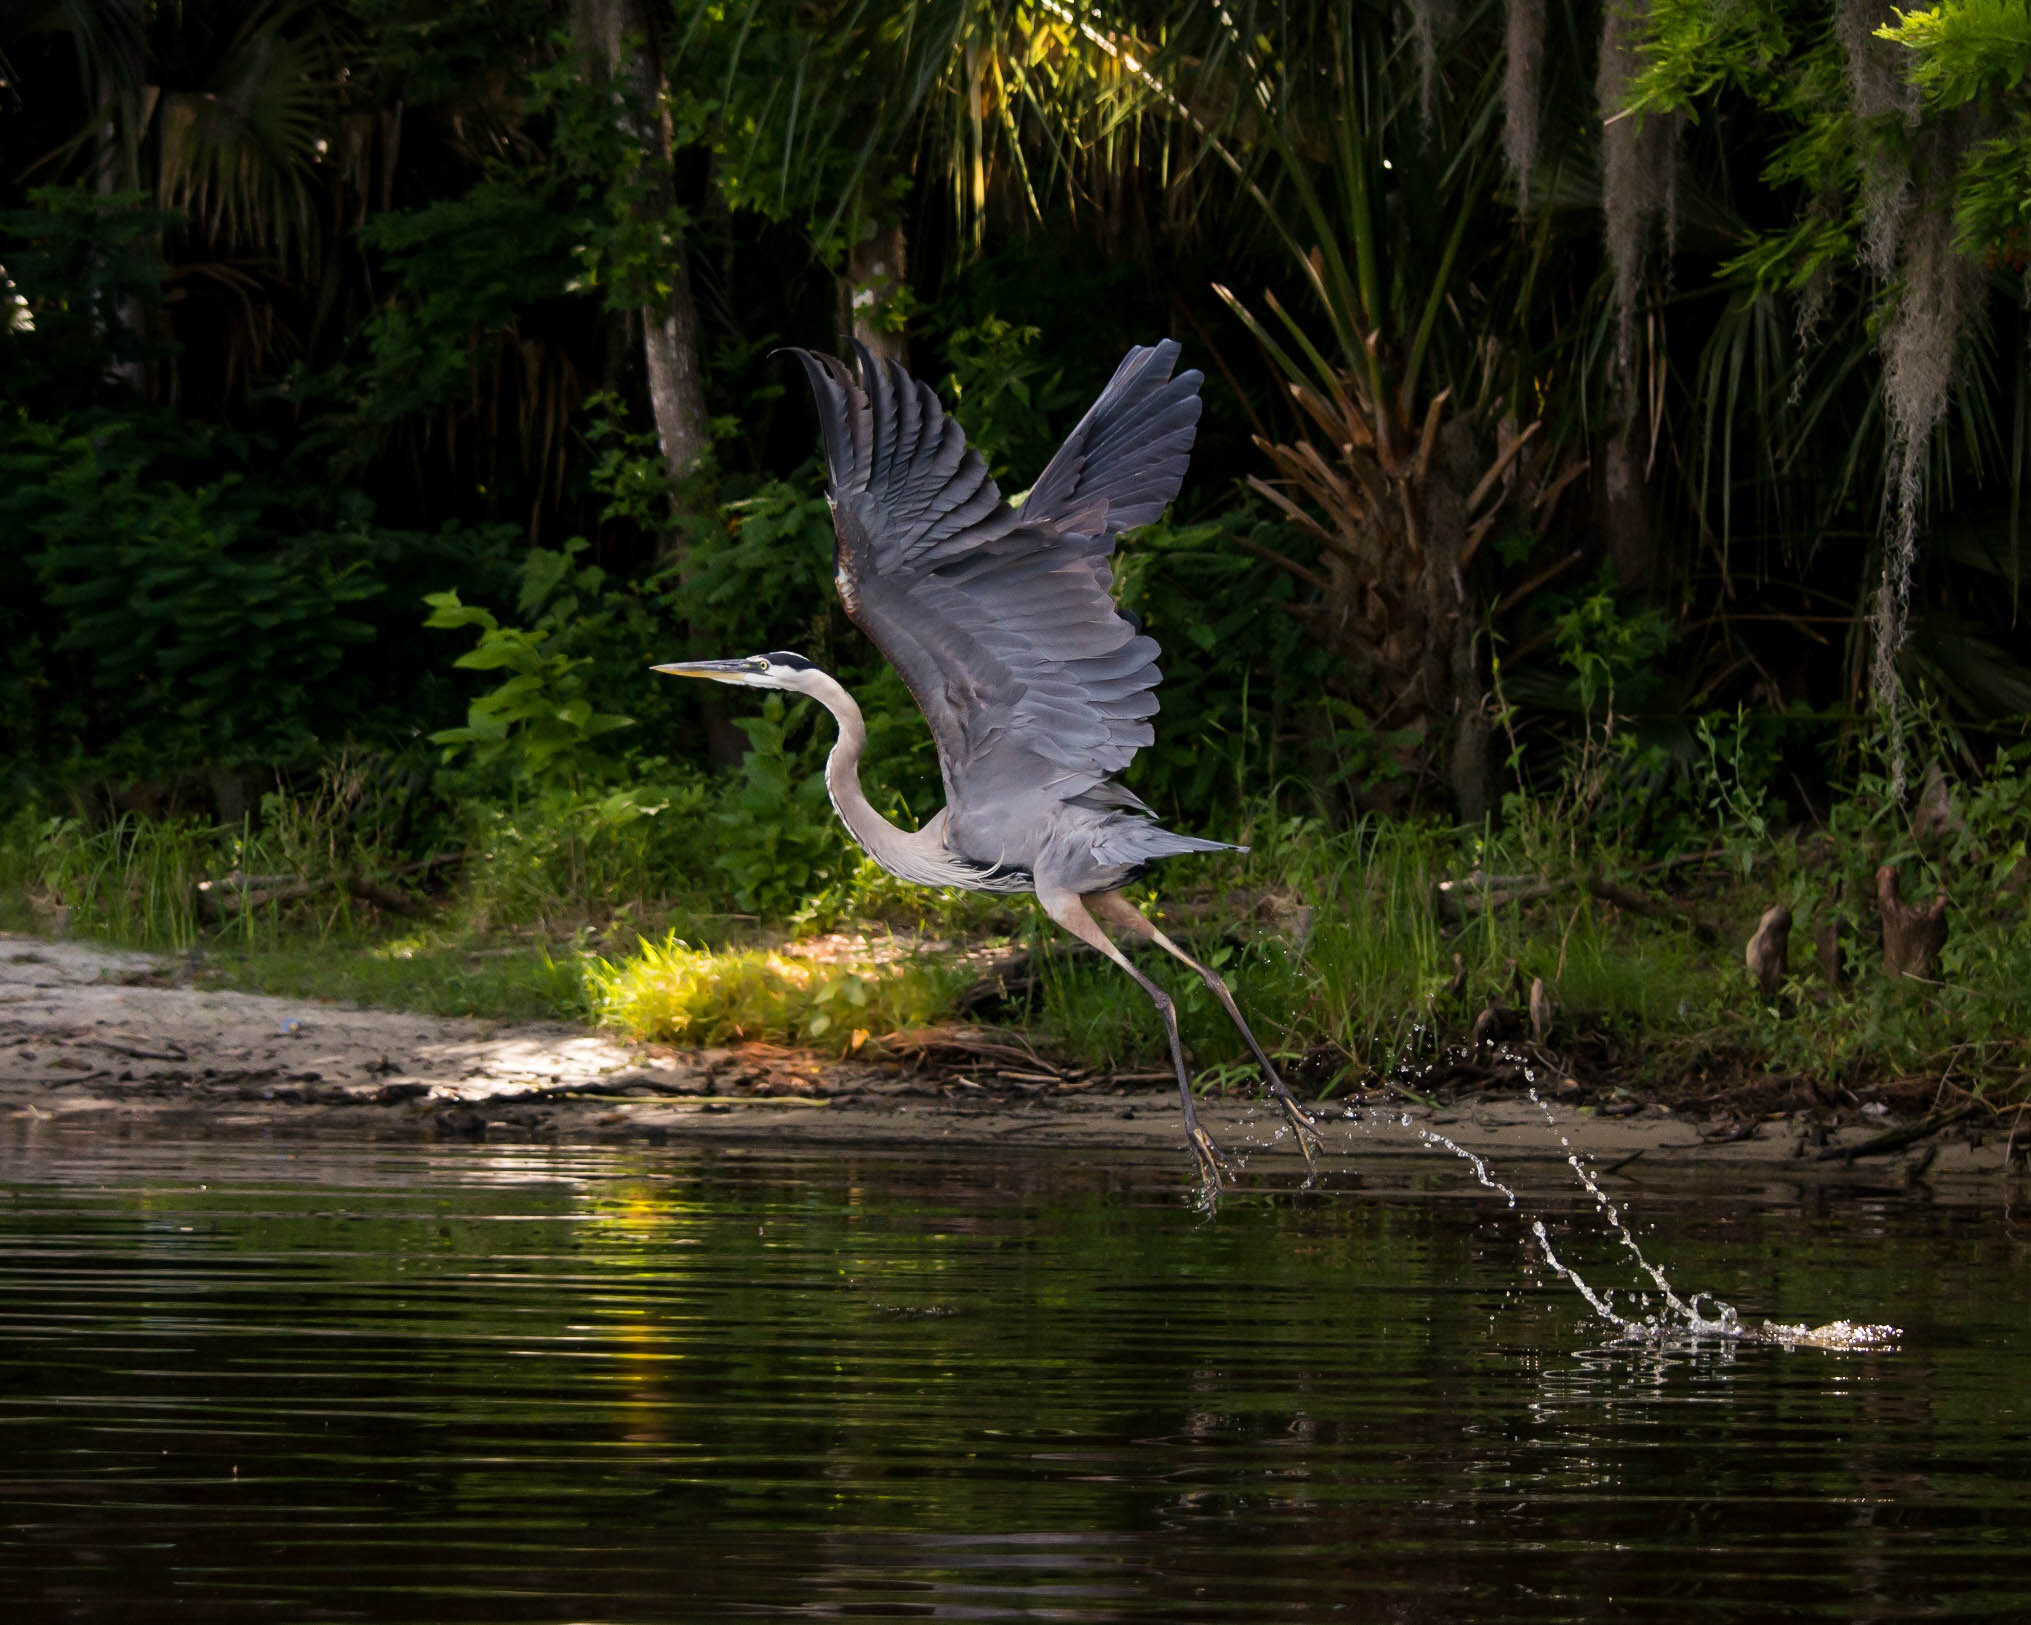 A great blue heron taking flight over the Wekiva River, which is located in the Wekiva to Ocala Corridor. Photo by Tanner Diberardino.